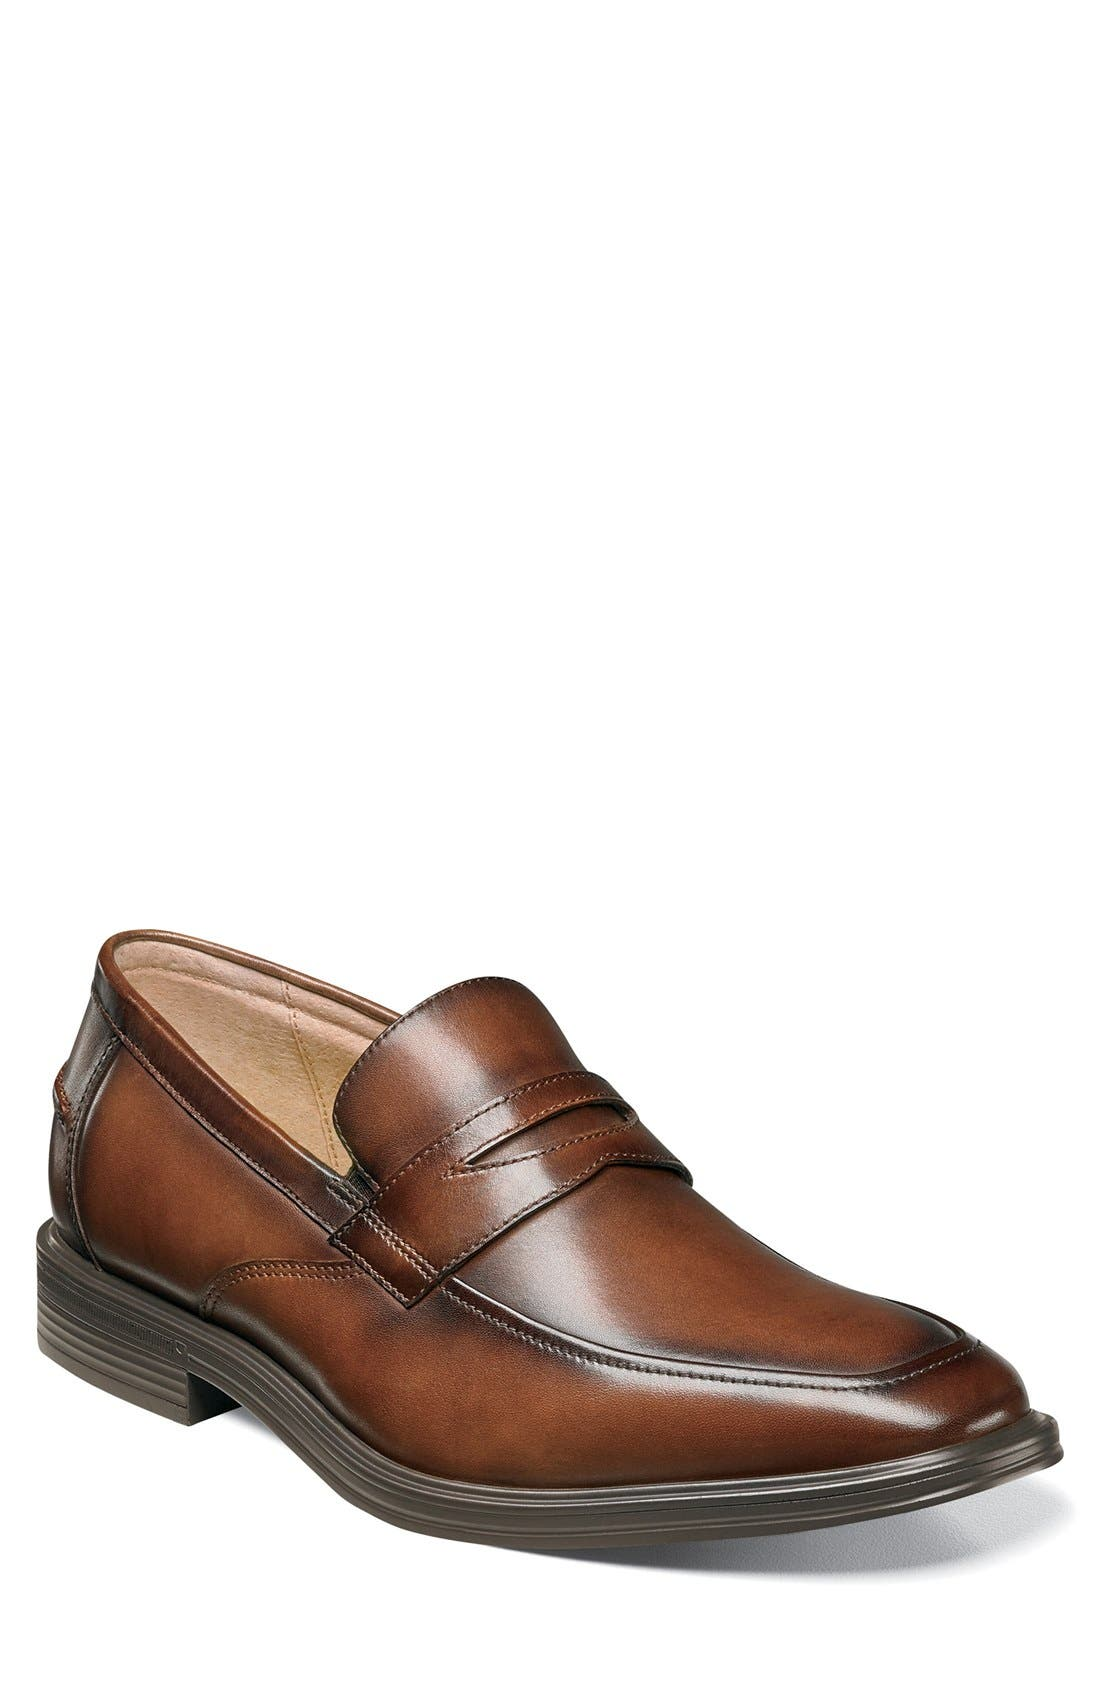 Florsheim 'Heights' Penny Loafer (Men)